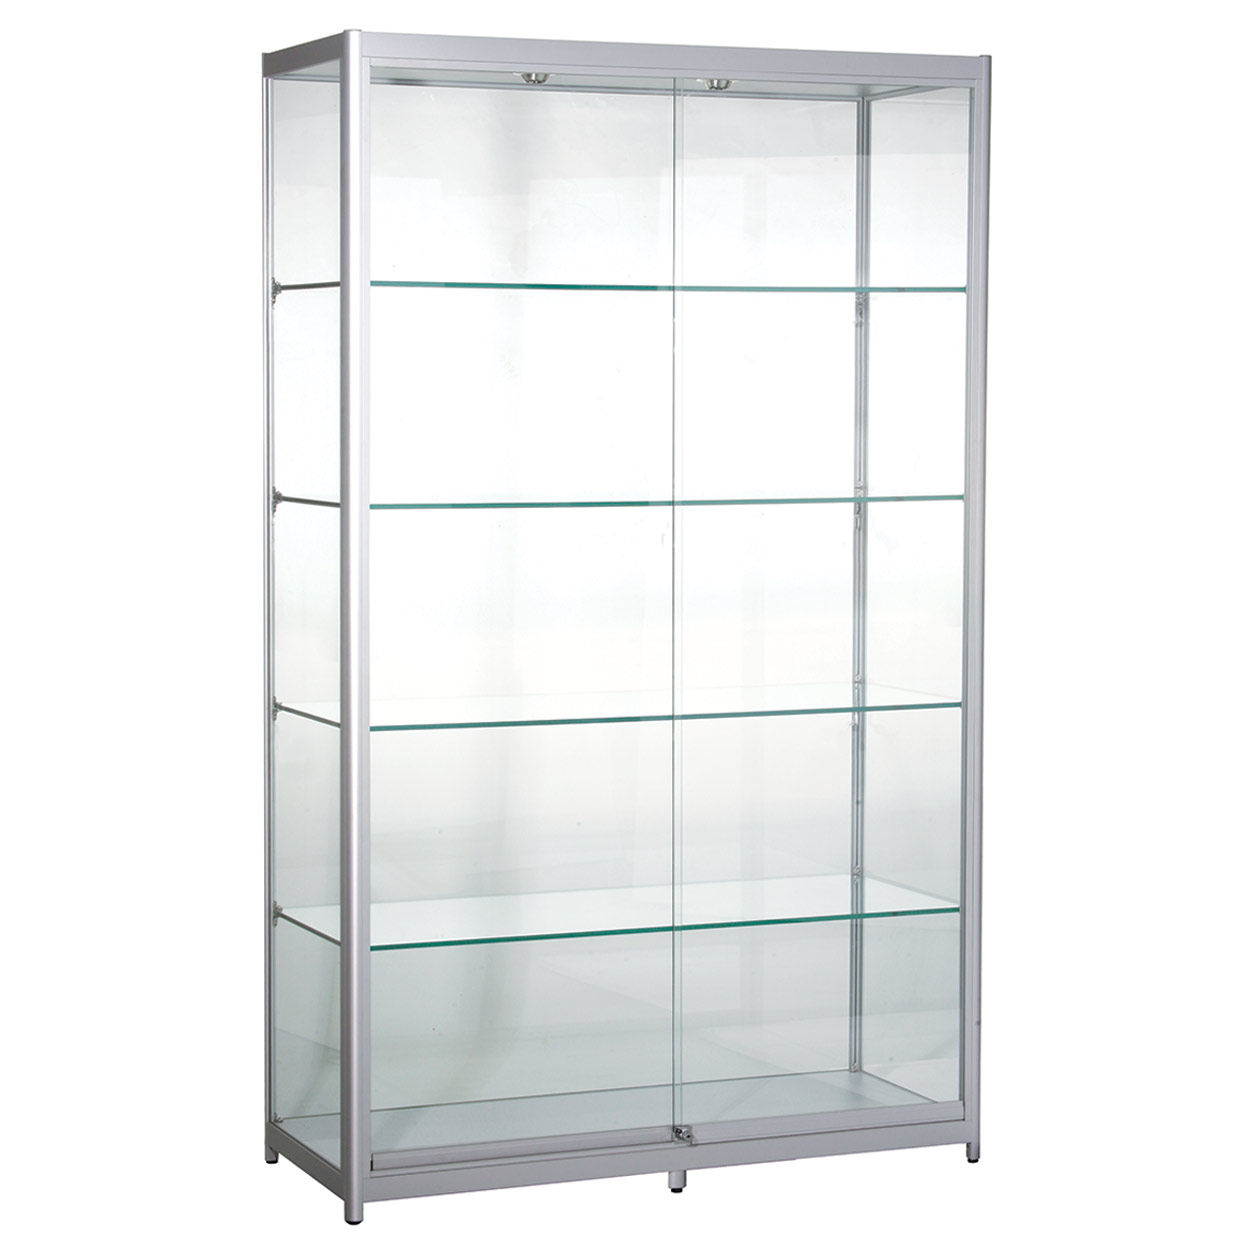 Aluminium Tall Showcase